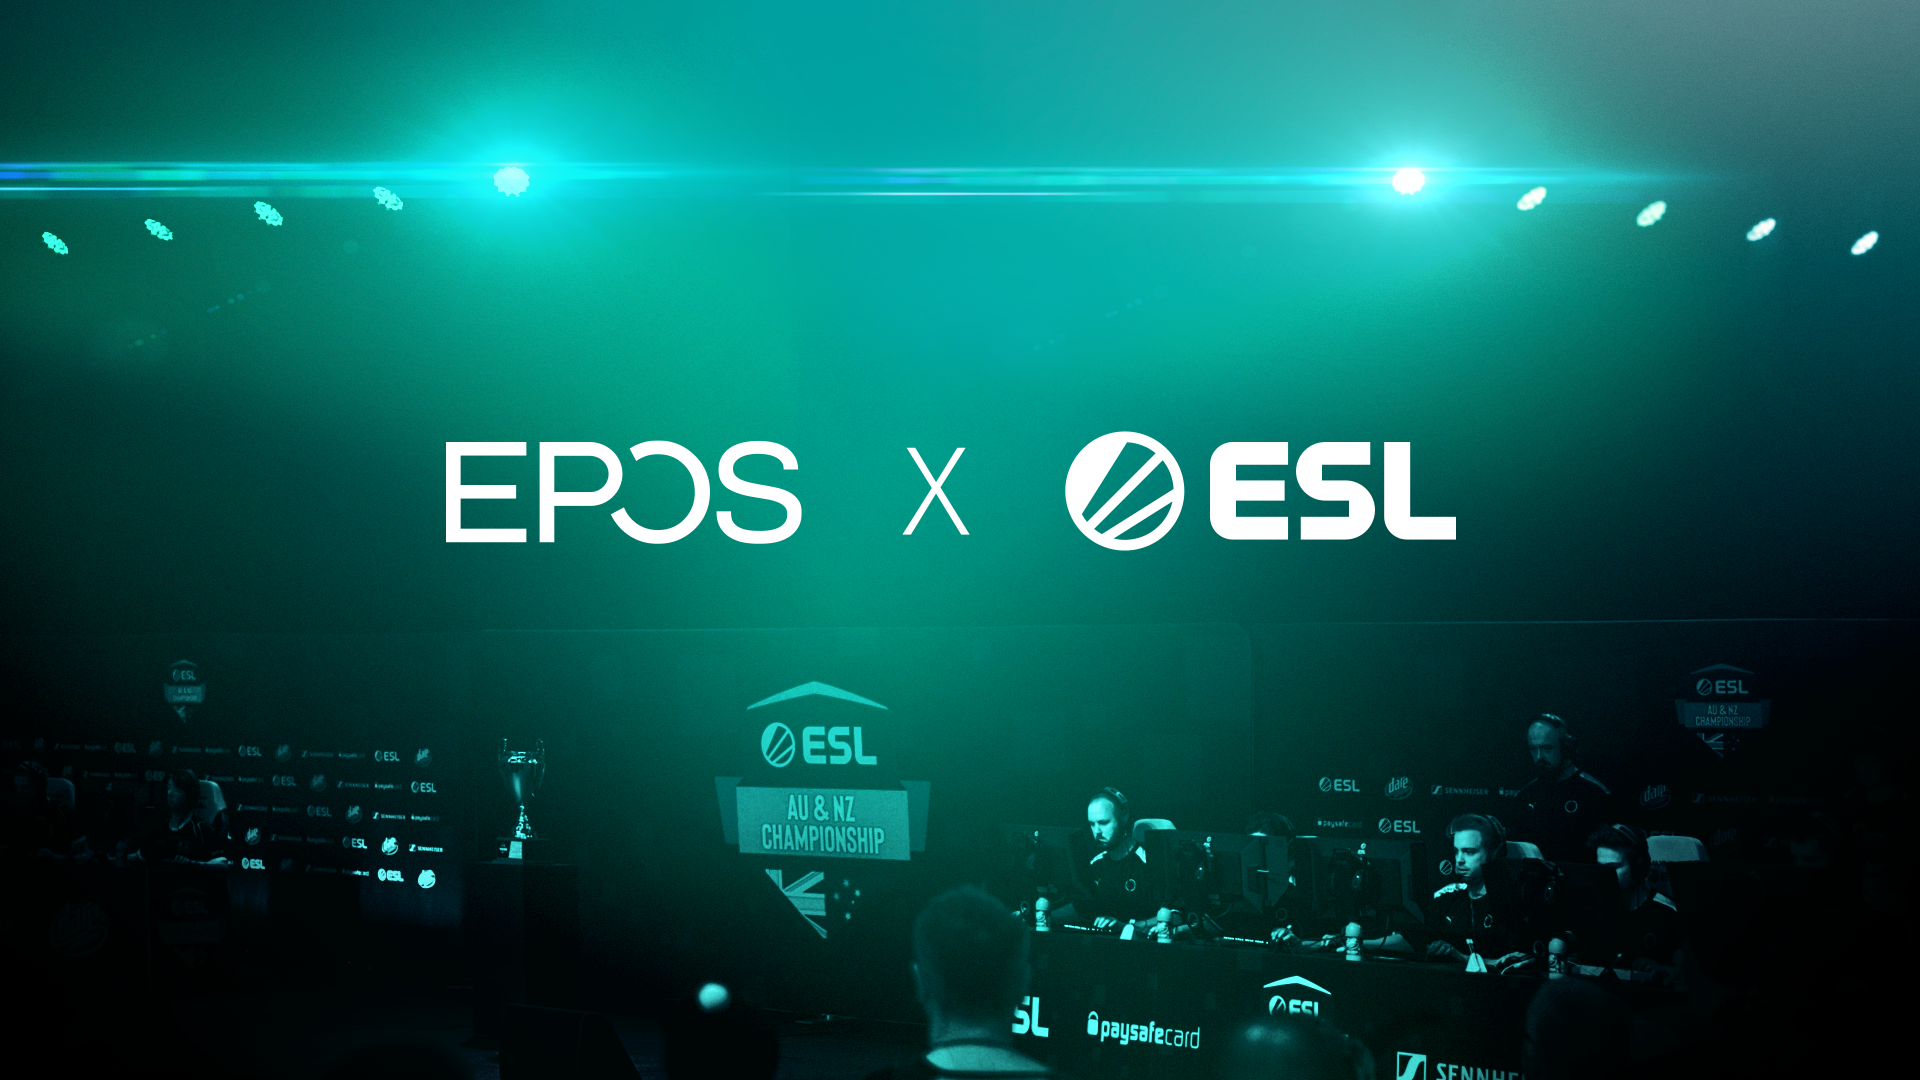 EPOS Partners With ESL to Bring Unrivalled Audio to the ESL ANZ Champs In New Two-Year Deal